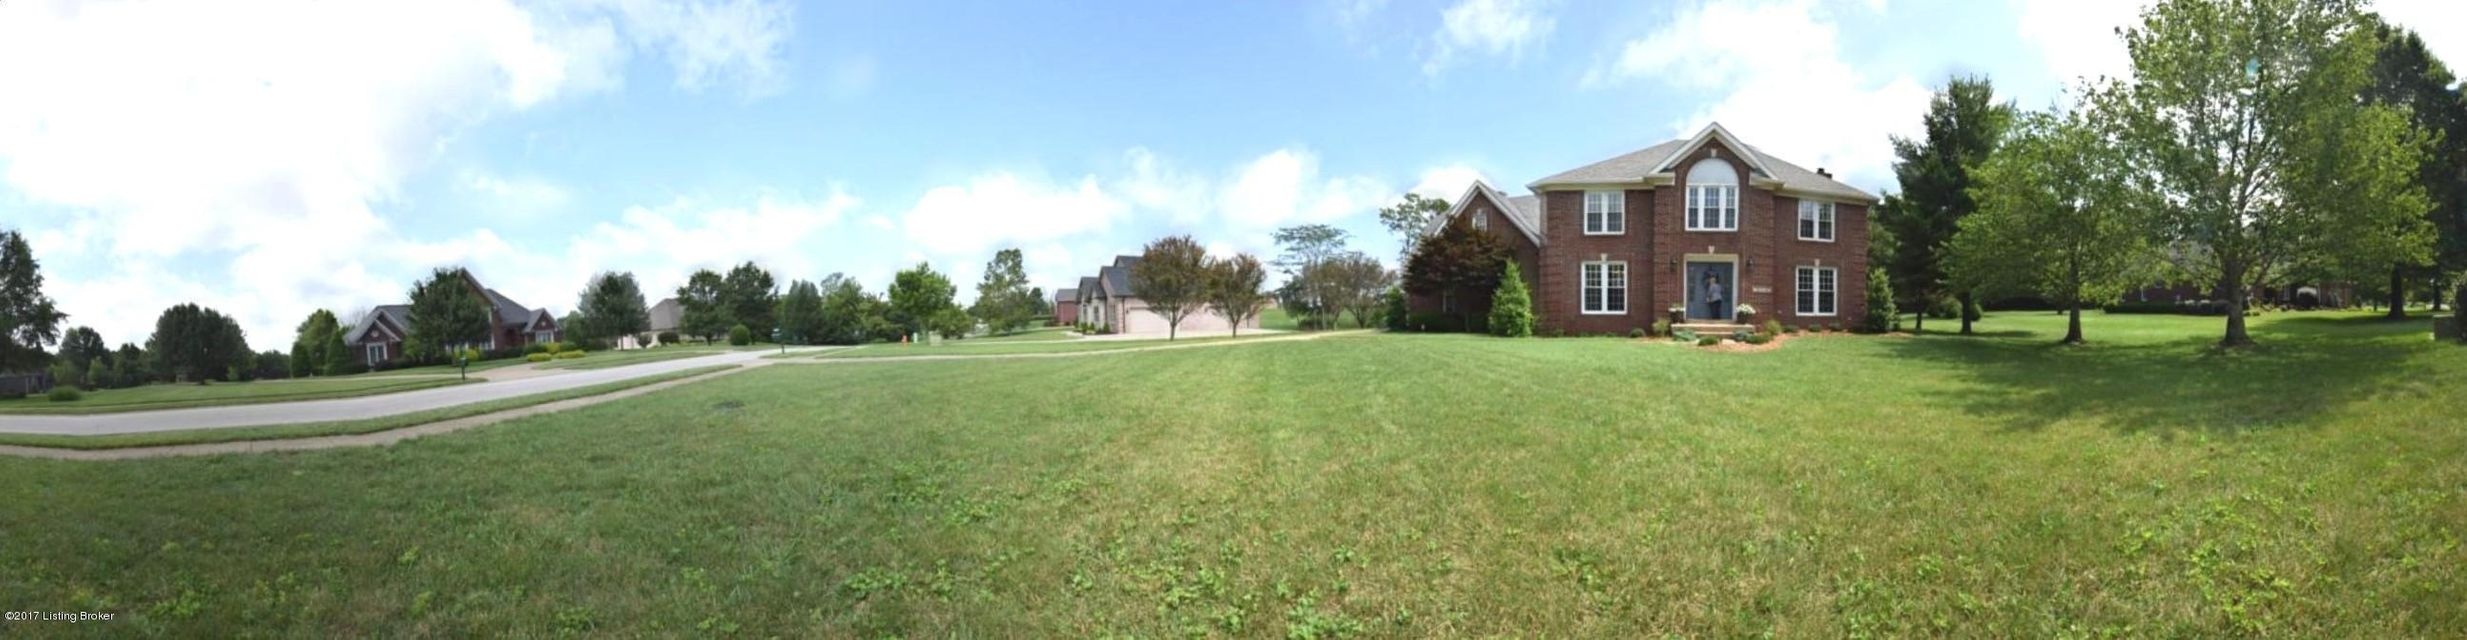 Additional photo for property listing at 366 Twelve Oaks Drive  Mount Washington, Kentucky 40047 United States